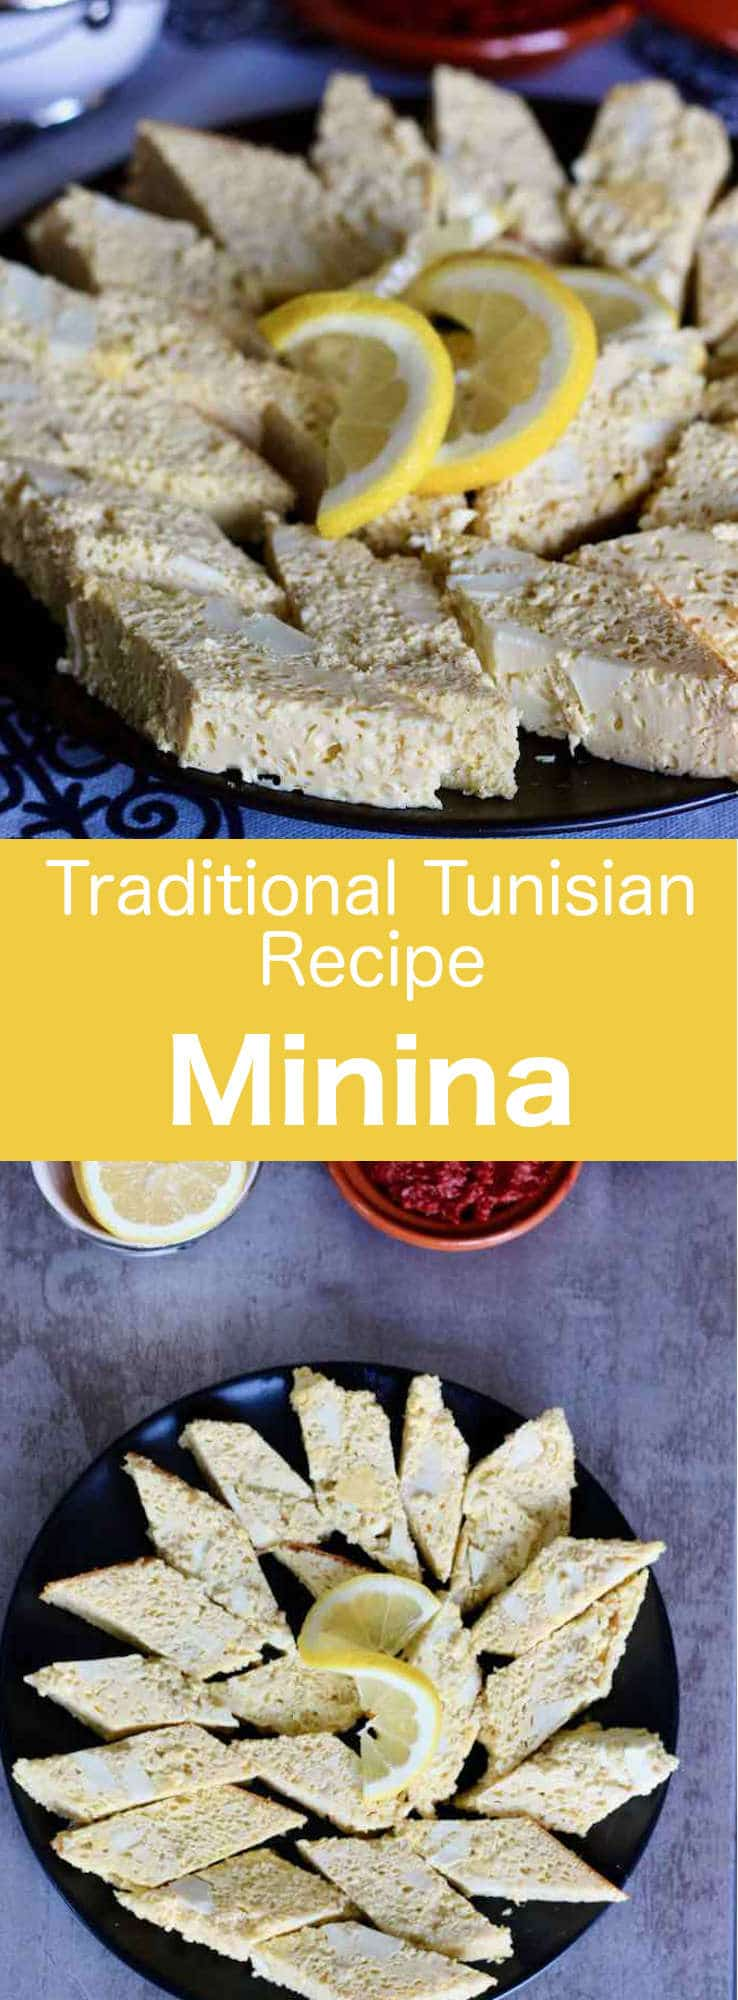 Minina is a delicious thick chicken omelette that is one of the greatest classic recipes of Tunisian and North African Jewish cuisine. #Tunisia #Tunisian #TunisianCuisine #TunisianRecipe #NorthAfricanCuisine #NorthAfricanRecipe #NorthAfrica #Maghreb #MaghrebCuisine #WorldCuisine #196flavors